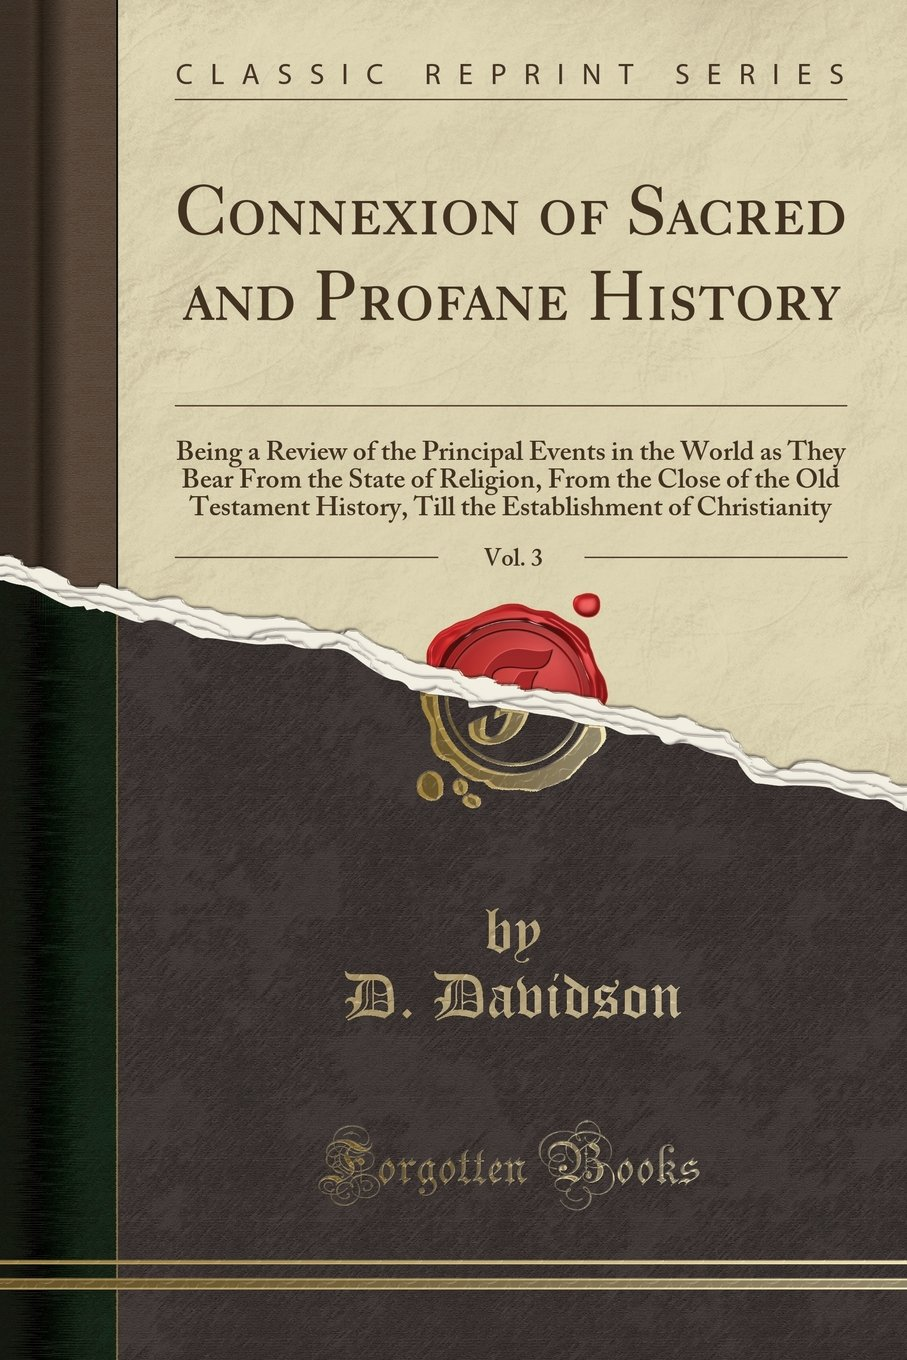 Connexion of Sacred and Profane History, Vol. 3: Being a Review of the Principal Events in the World as They Bear From the State of Religion, From the ... of Christianity (Classic Reprint) ebook